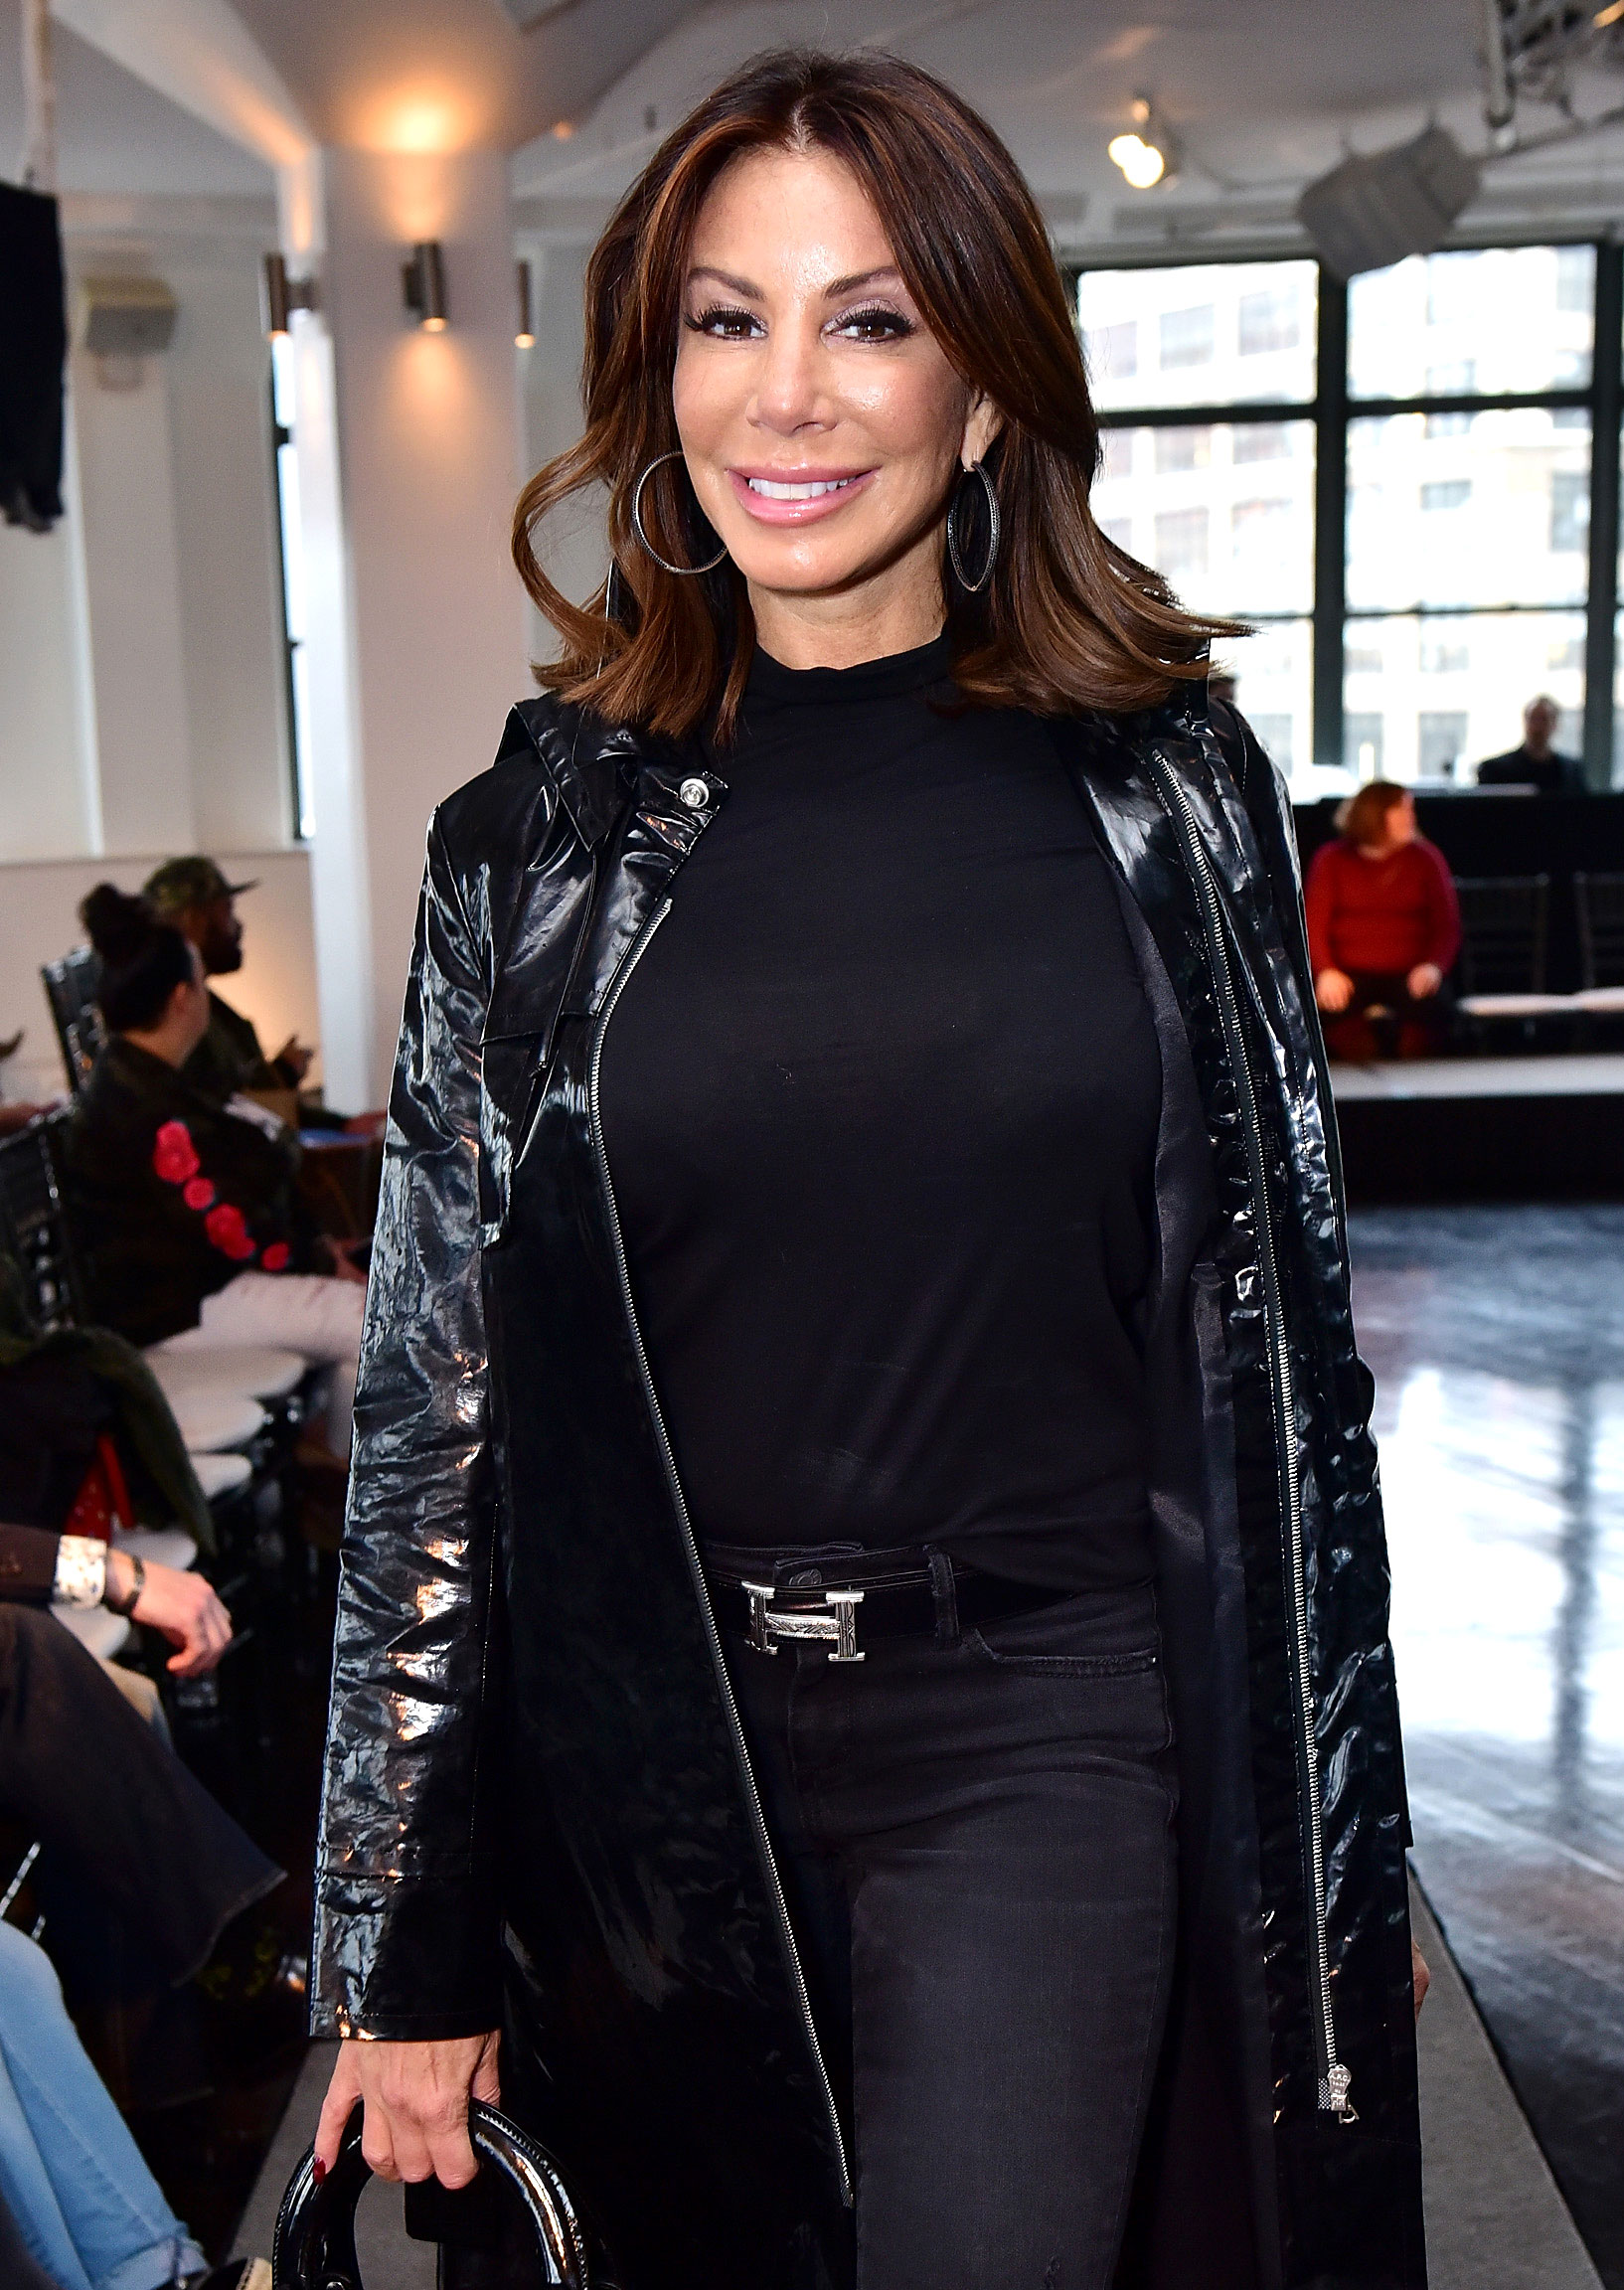 Melissa and Joe Gorga Shade Danielle Staub's 21st Engagement - Danielle Staub attends Cosmopolitan NYFW on February 8, 2019 in New York City.